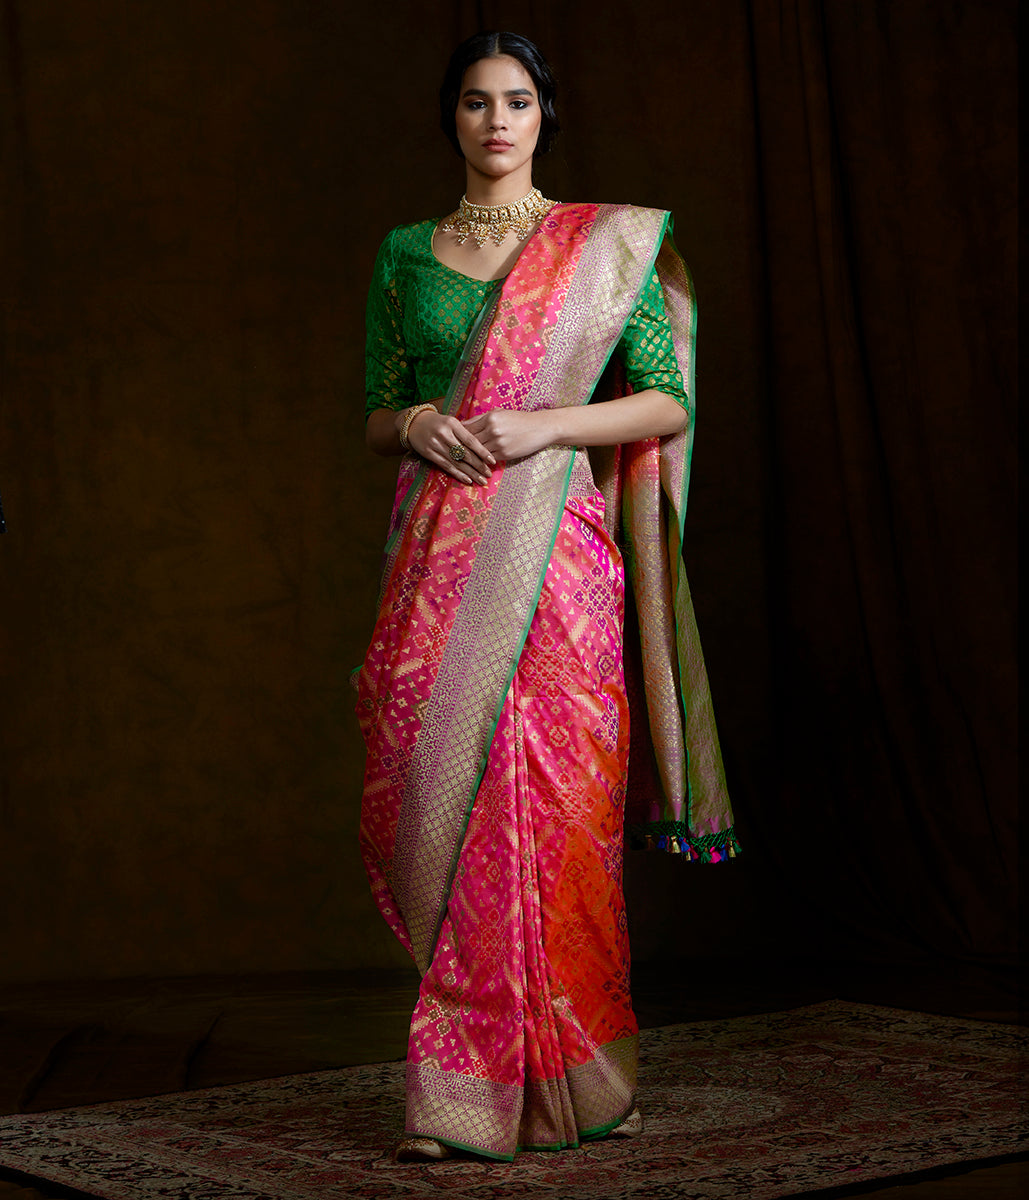 Handwoven Banarasi Patola saree in Pink dual tone with a green border